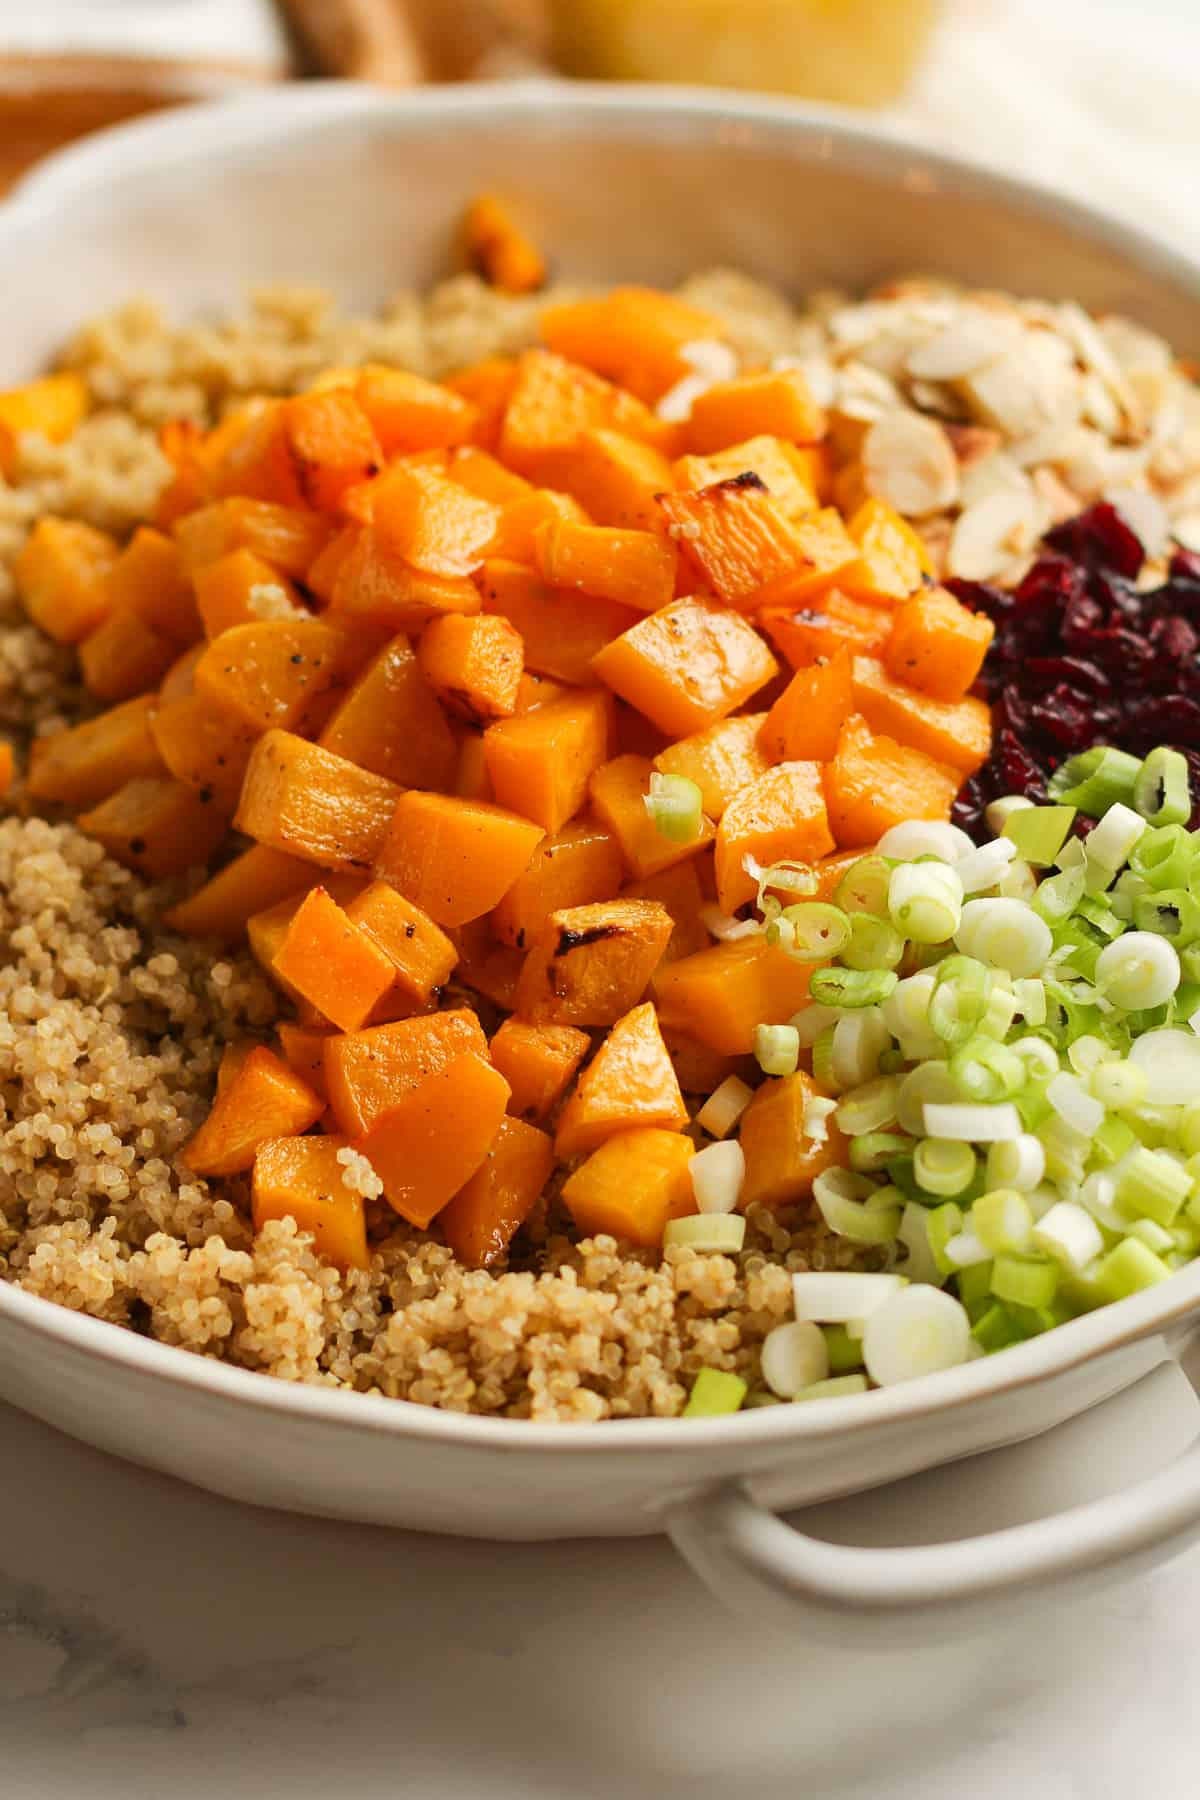 A bowl of the quinoa and toppings by ingredient.